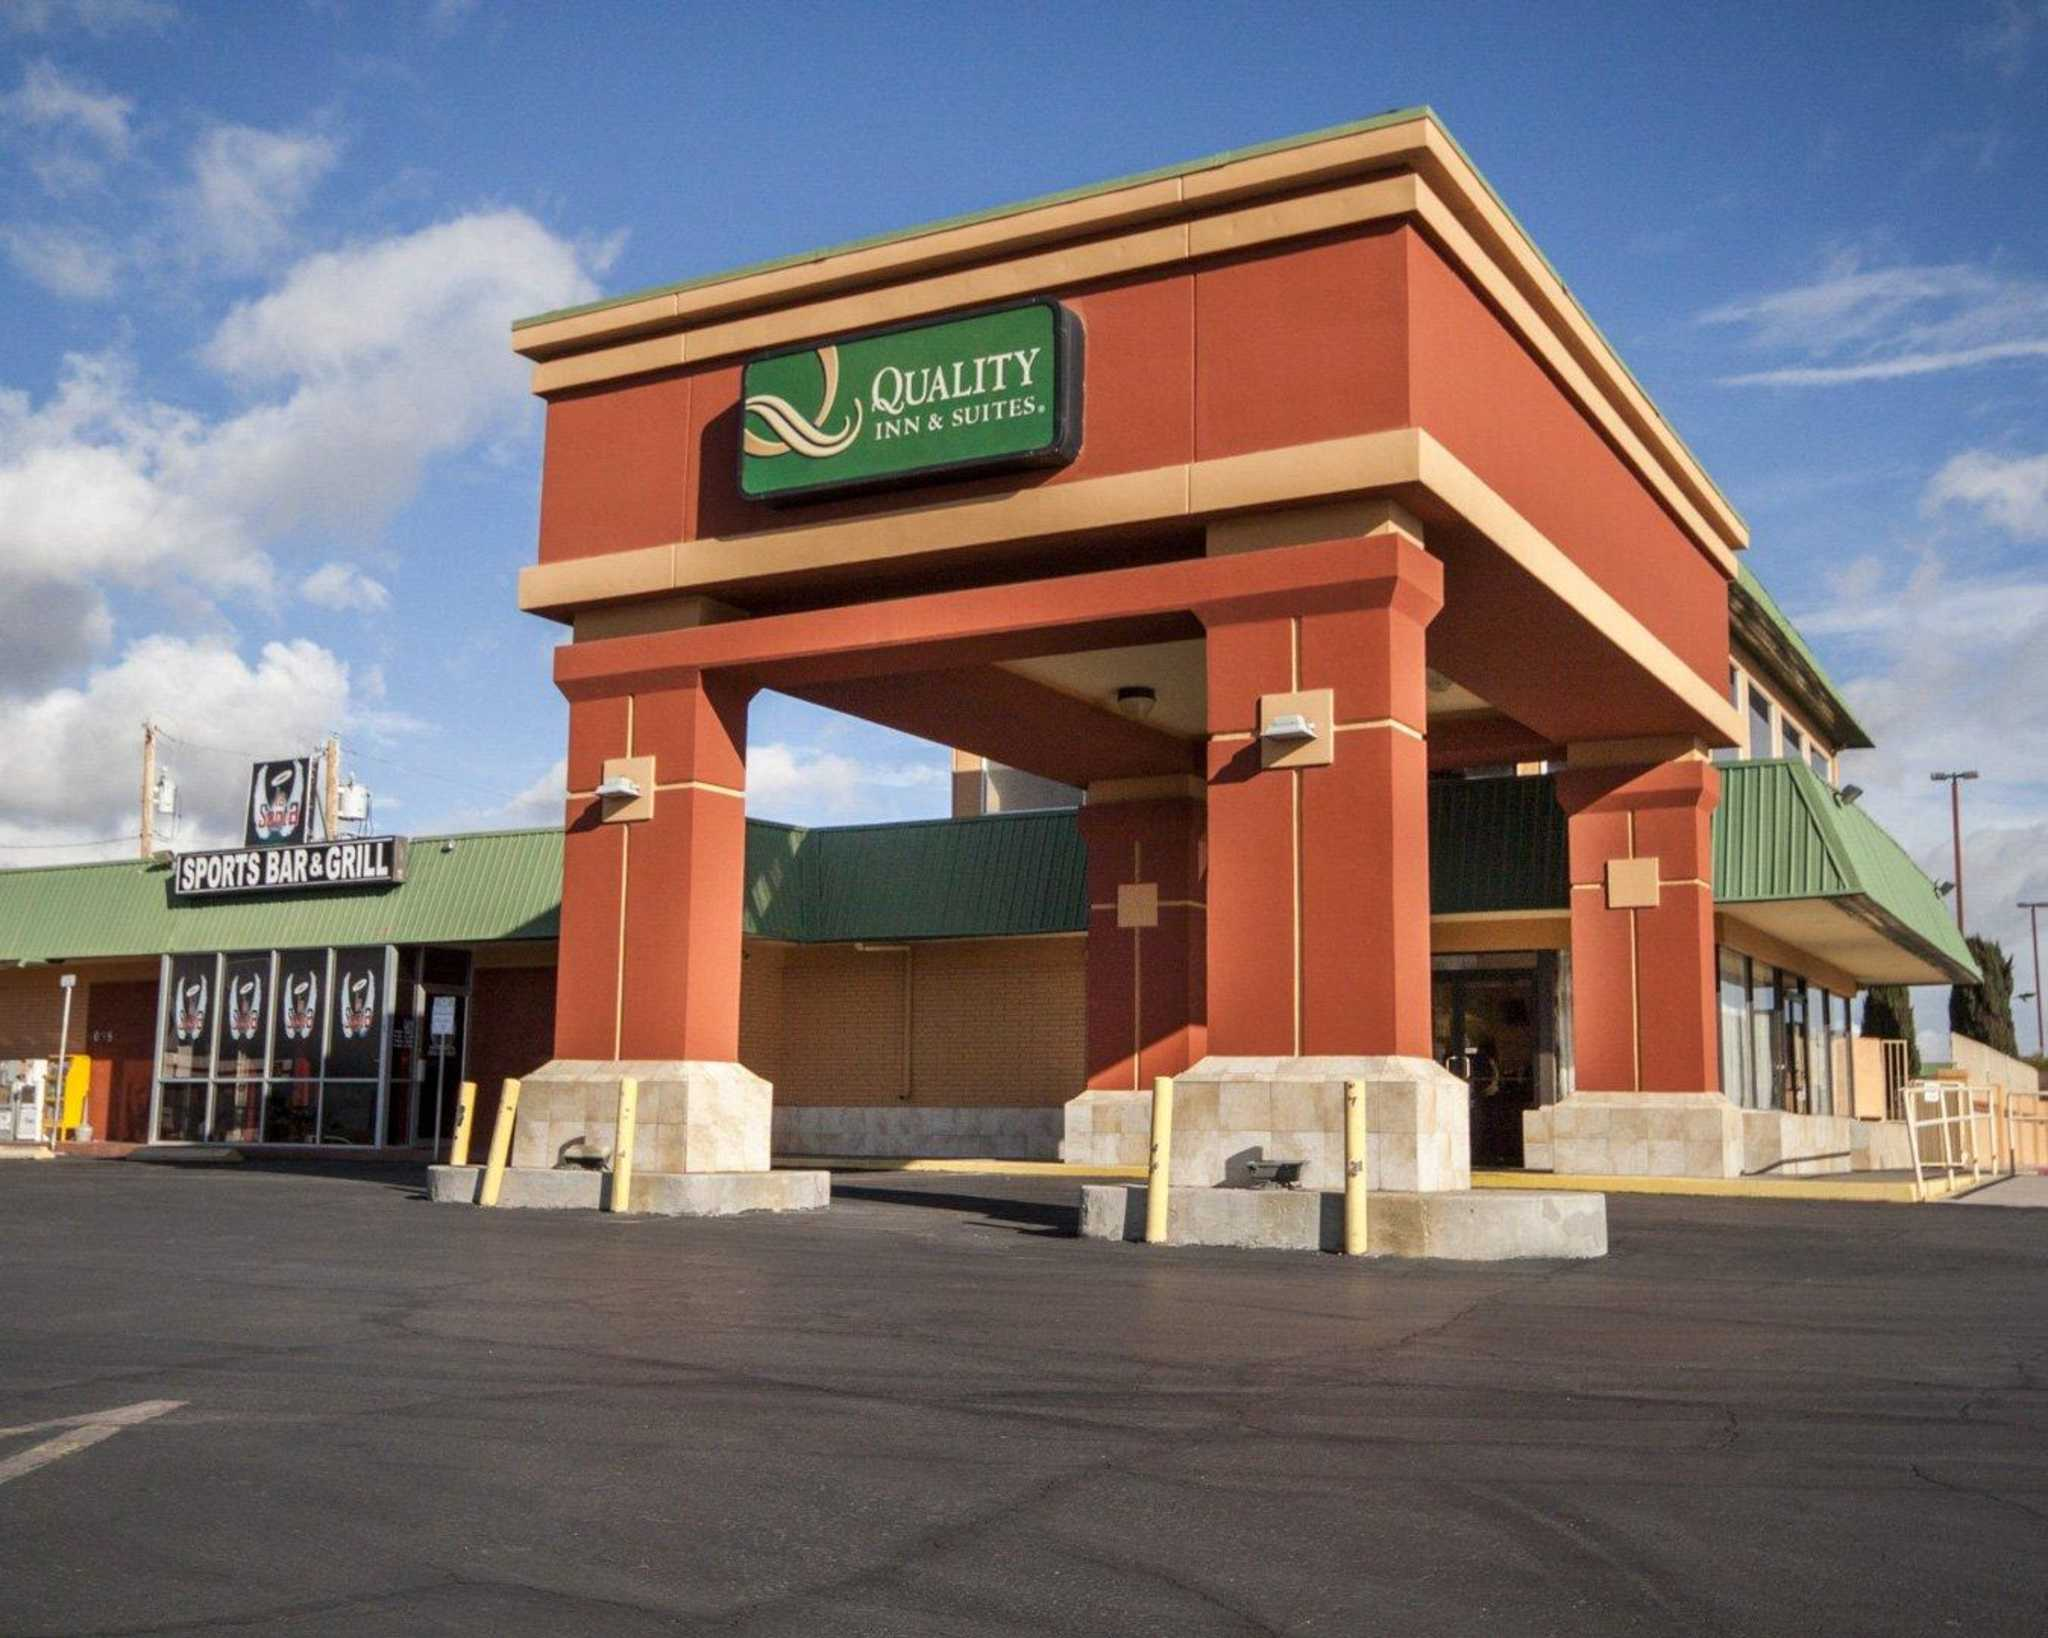 Quality Inn & Suites Airport image 1